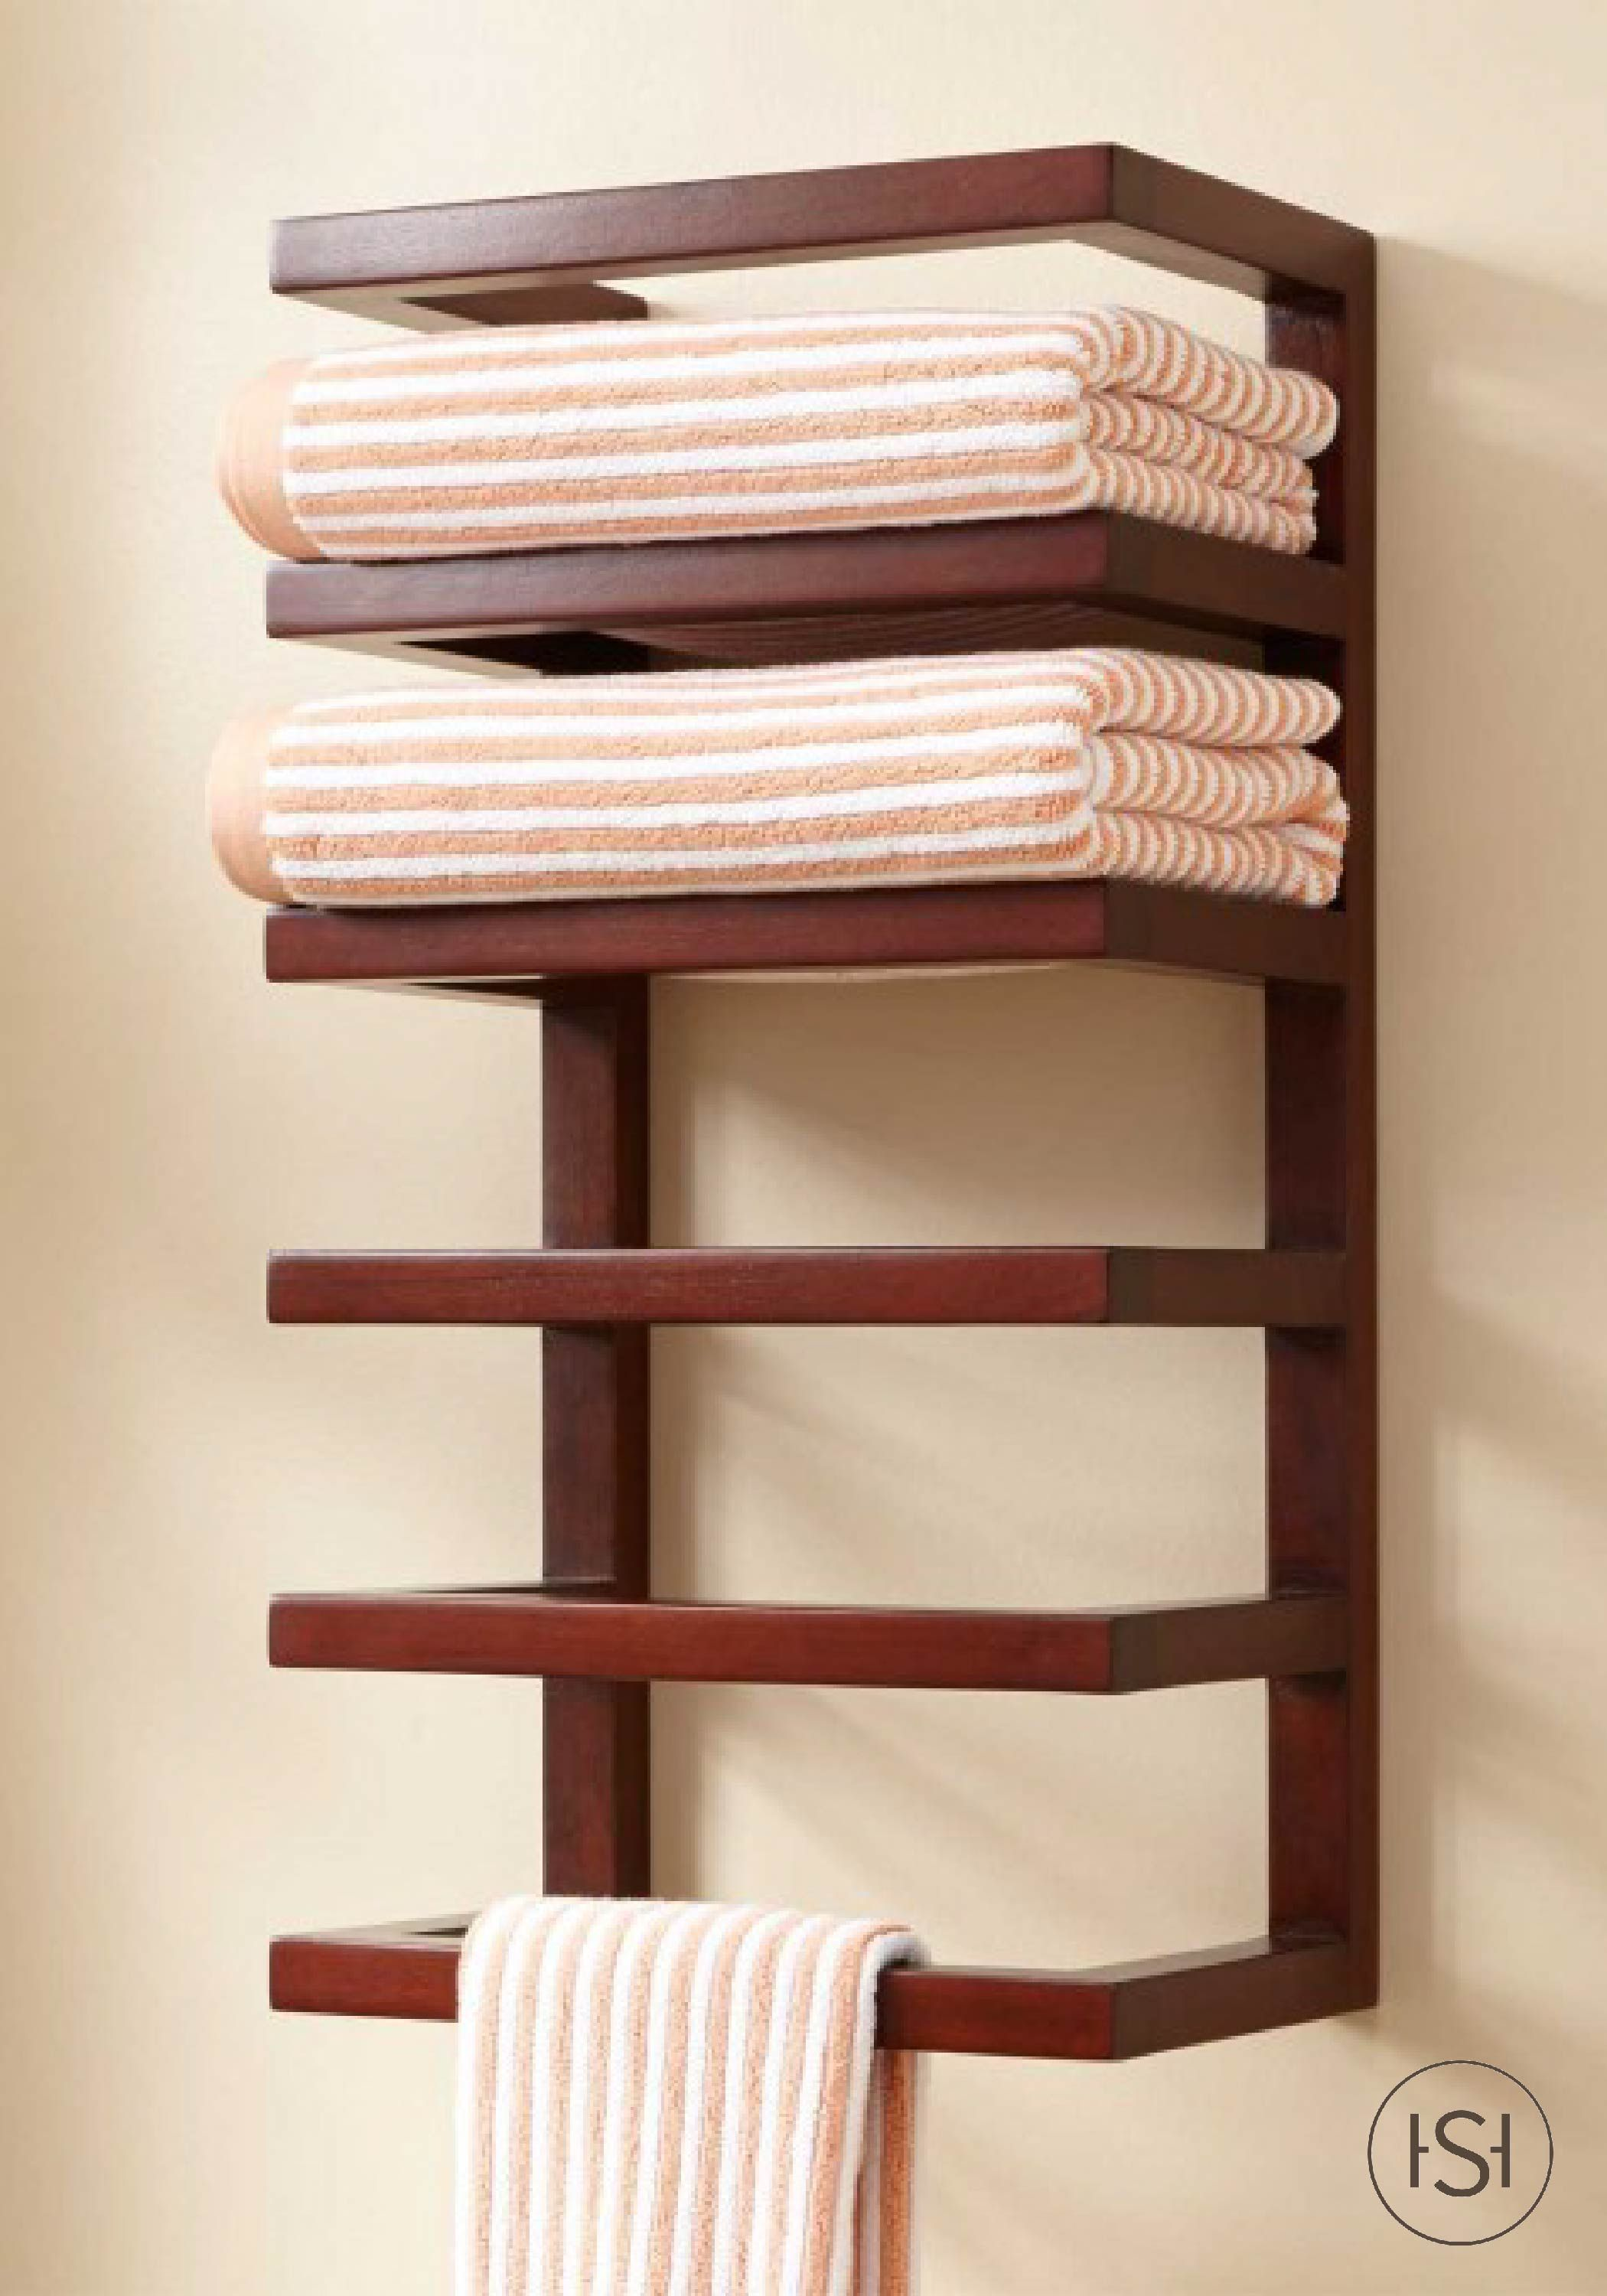 Wooden Bathroom Towel Rack | Wooden bathroom, Bathroom towels and Towels